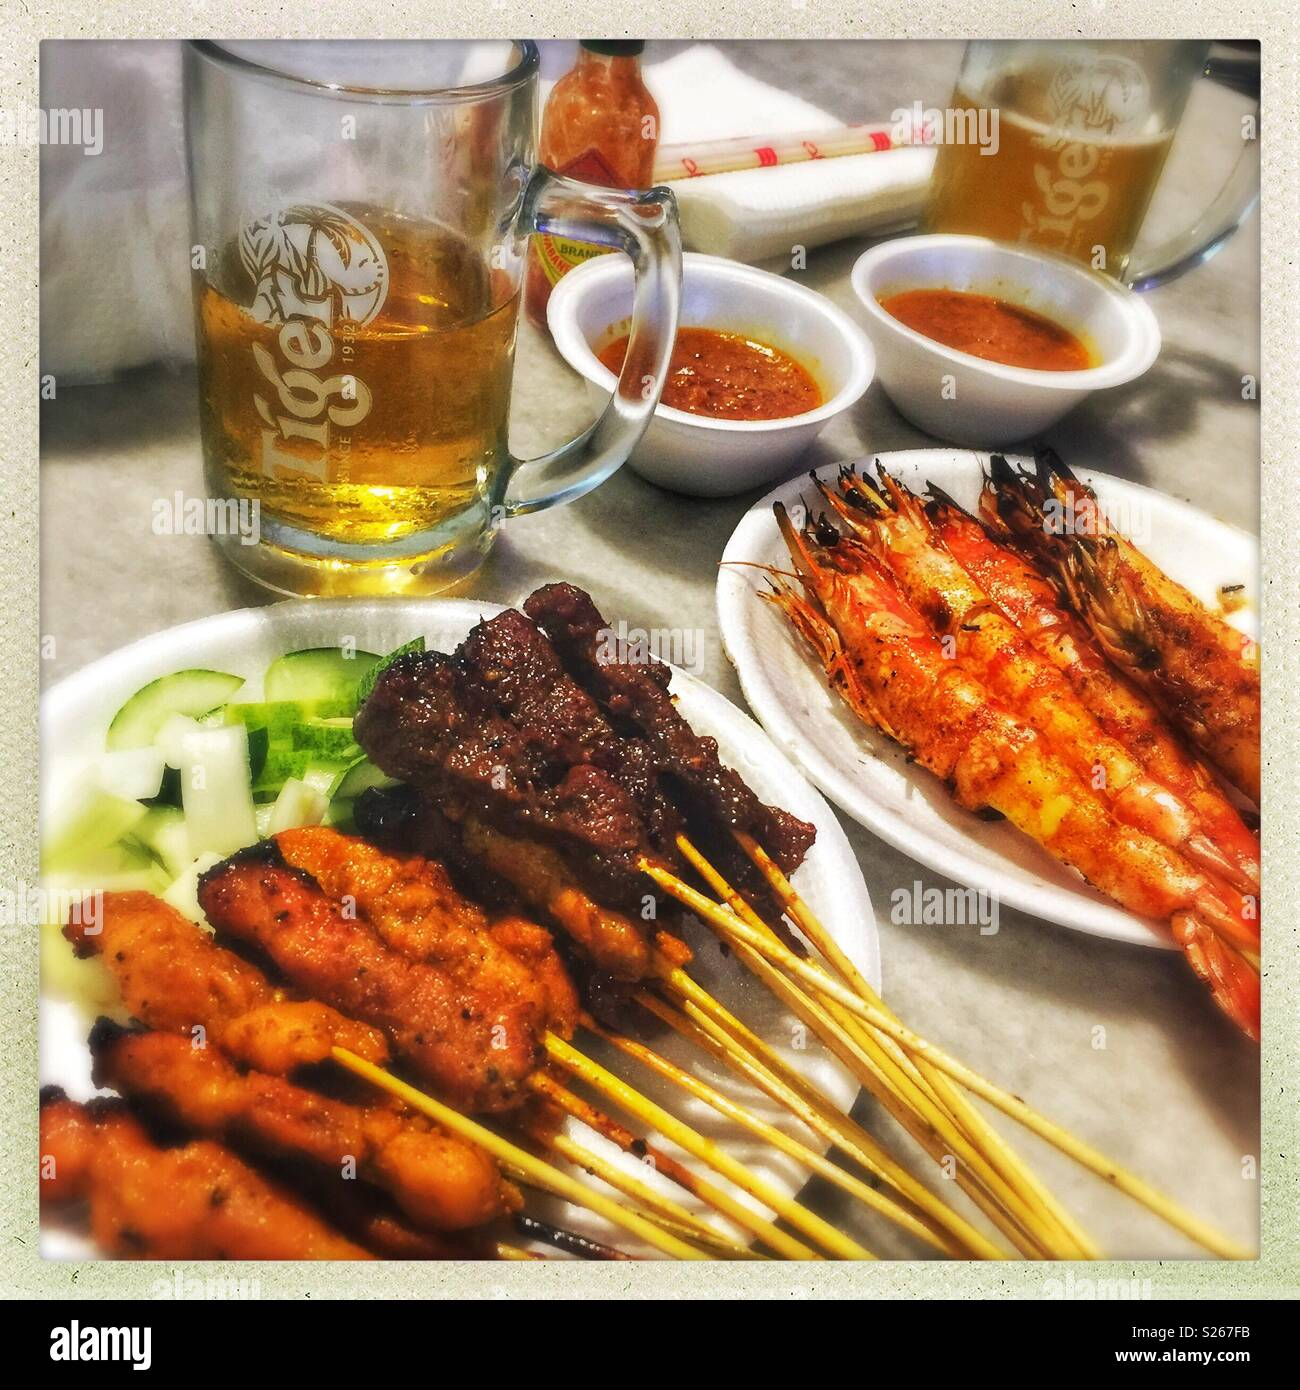 Satay and Tiger beer - dinner at Lau Pa Sat (Telok Ayer Food Market), Singapore - Stock Image